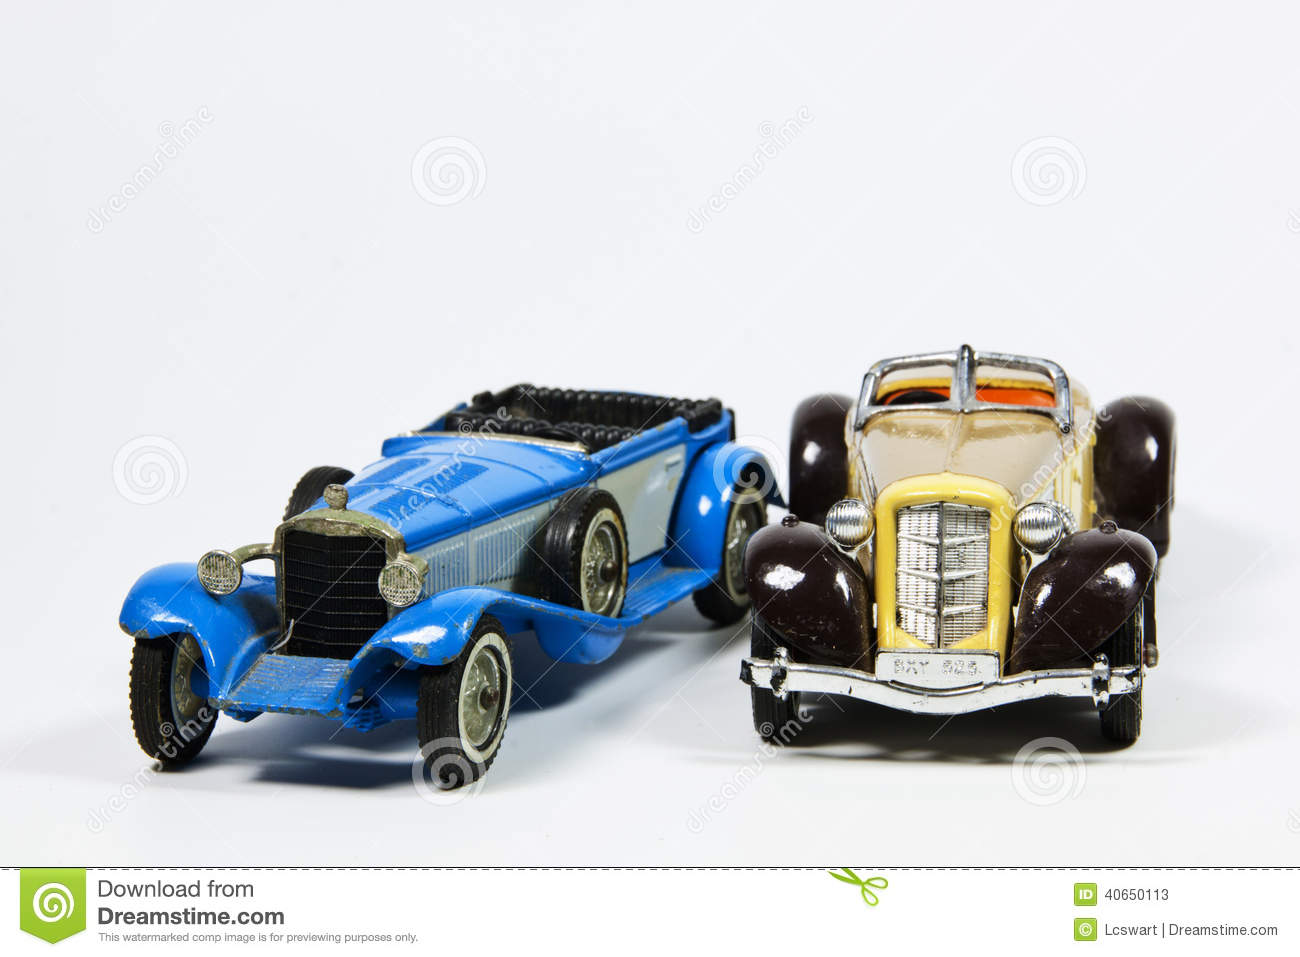 Toy Model Gallery : Two toy vintage model cars on white stock image